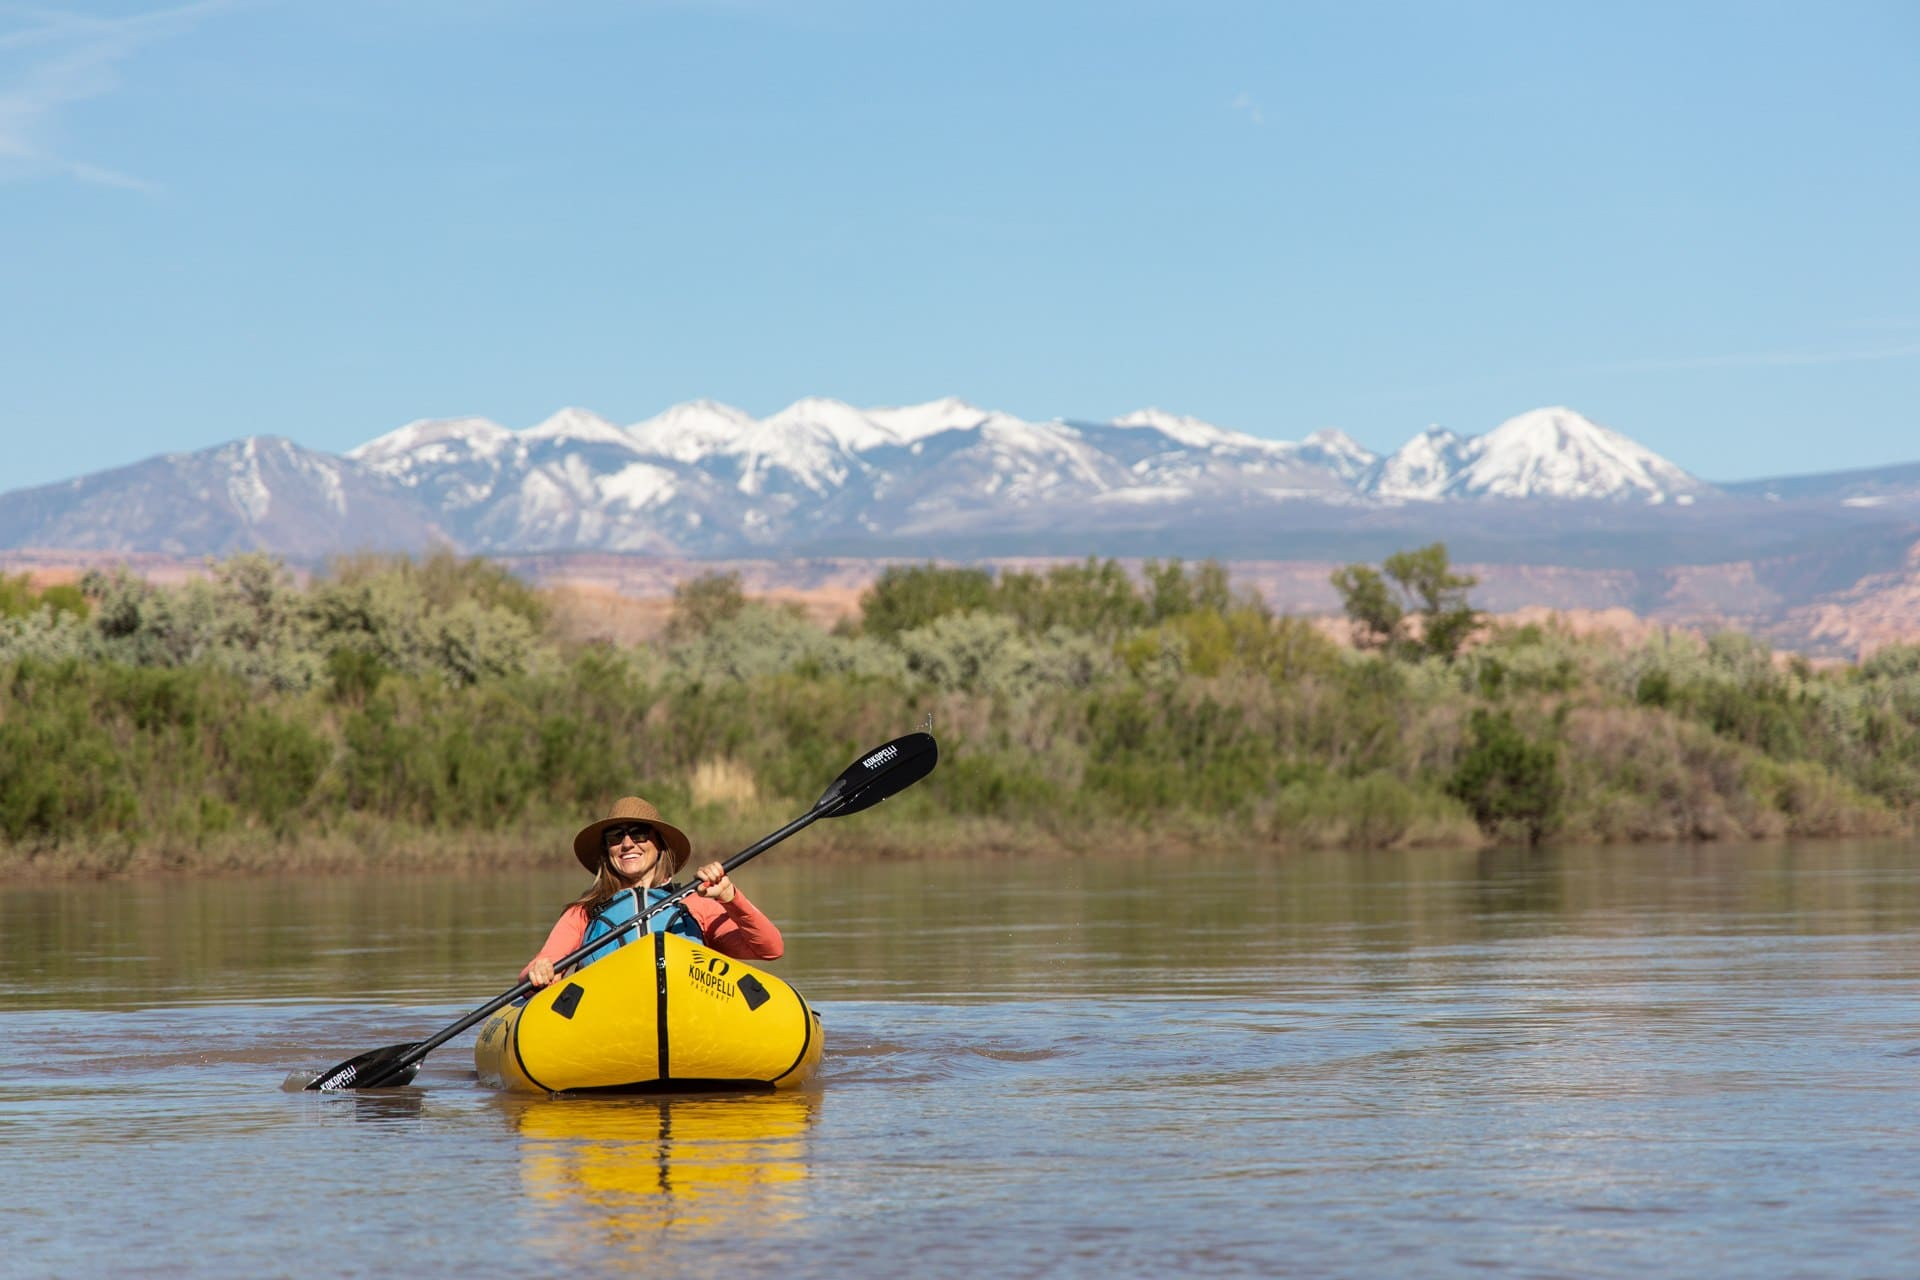 Paddling on the Colorado River // The best trails, waterfall hikes, campgrounds and more, that made the list of best things to do in Moab outside of the National Parks.